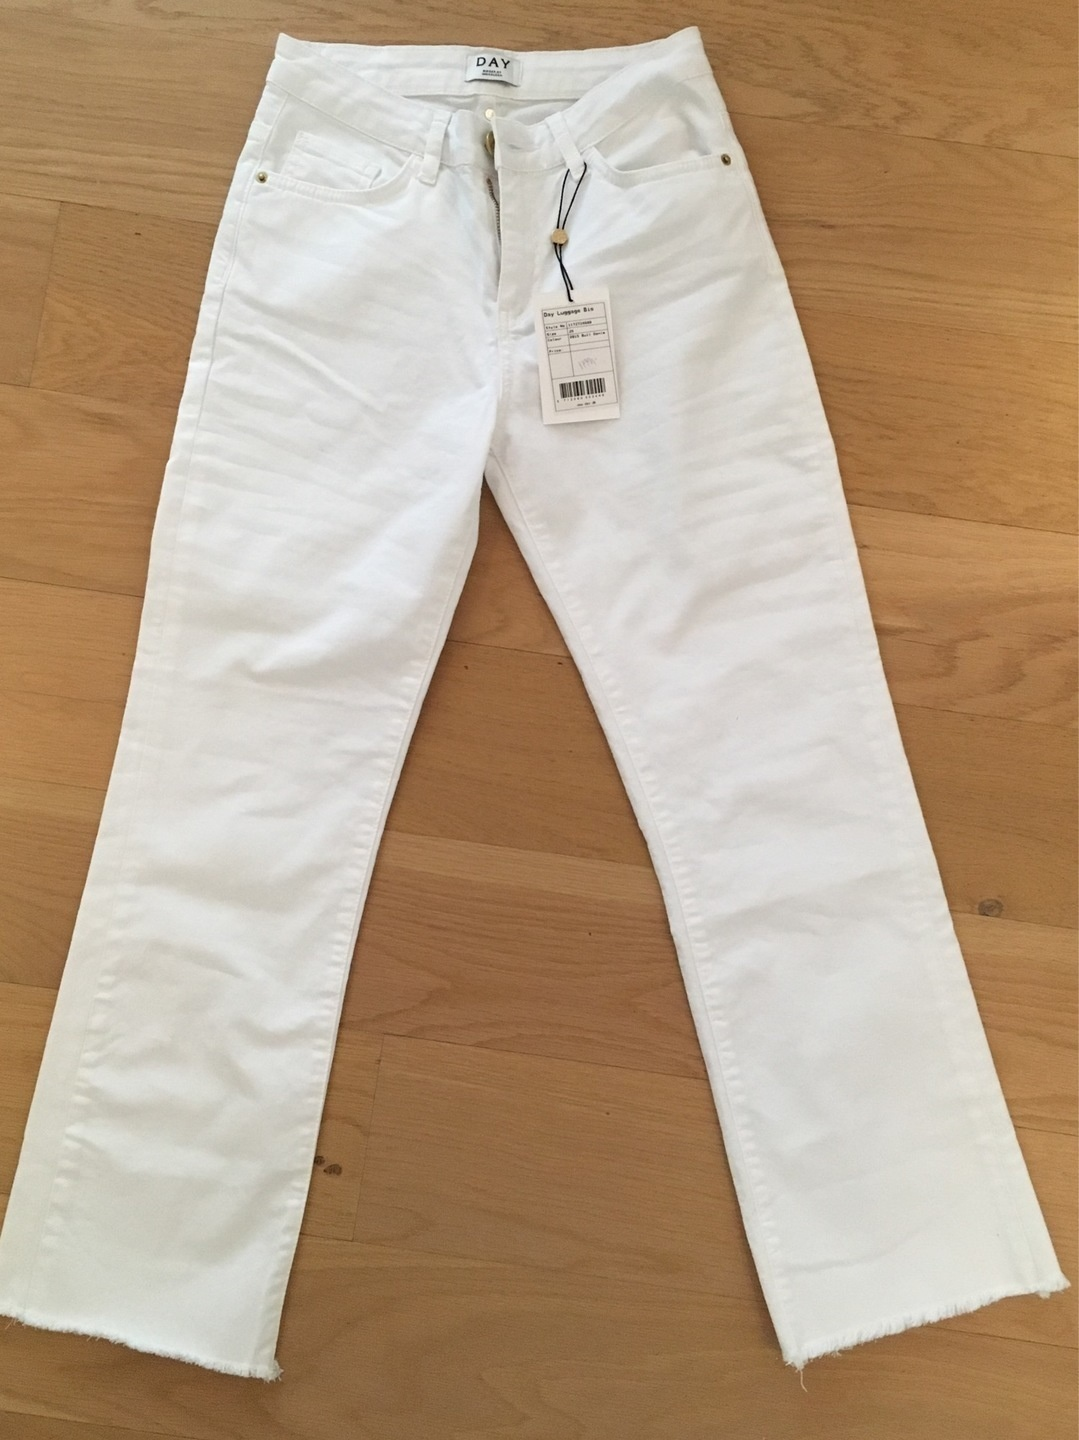 Women's trousers & jeans - DAYFINE photo 1